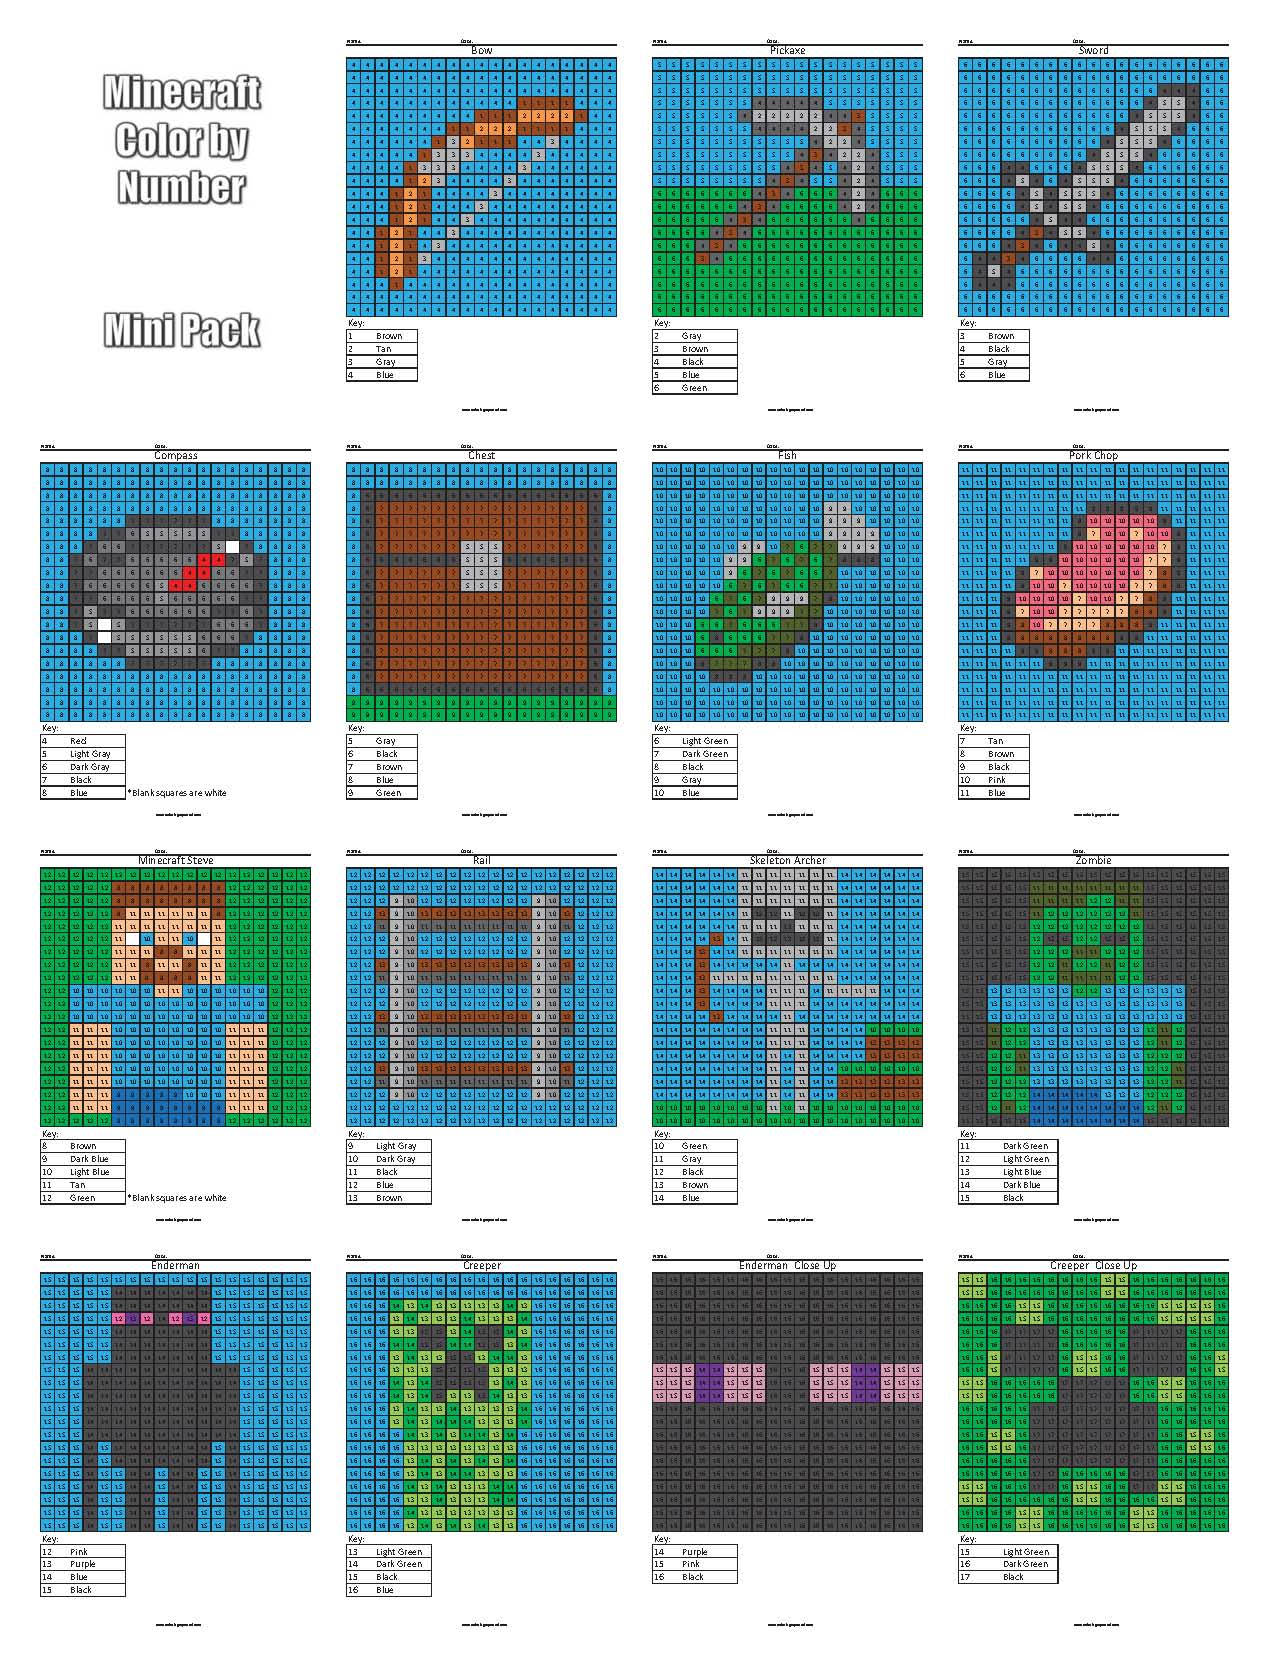 Minecraft Color by Number cover 16 - Coloring Squared